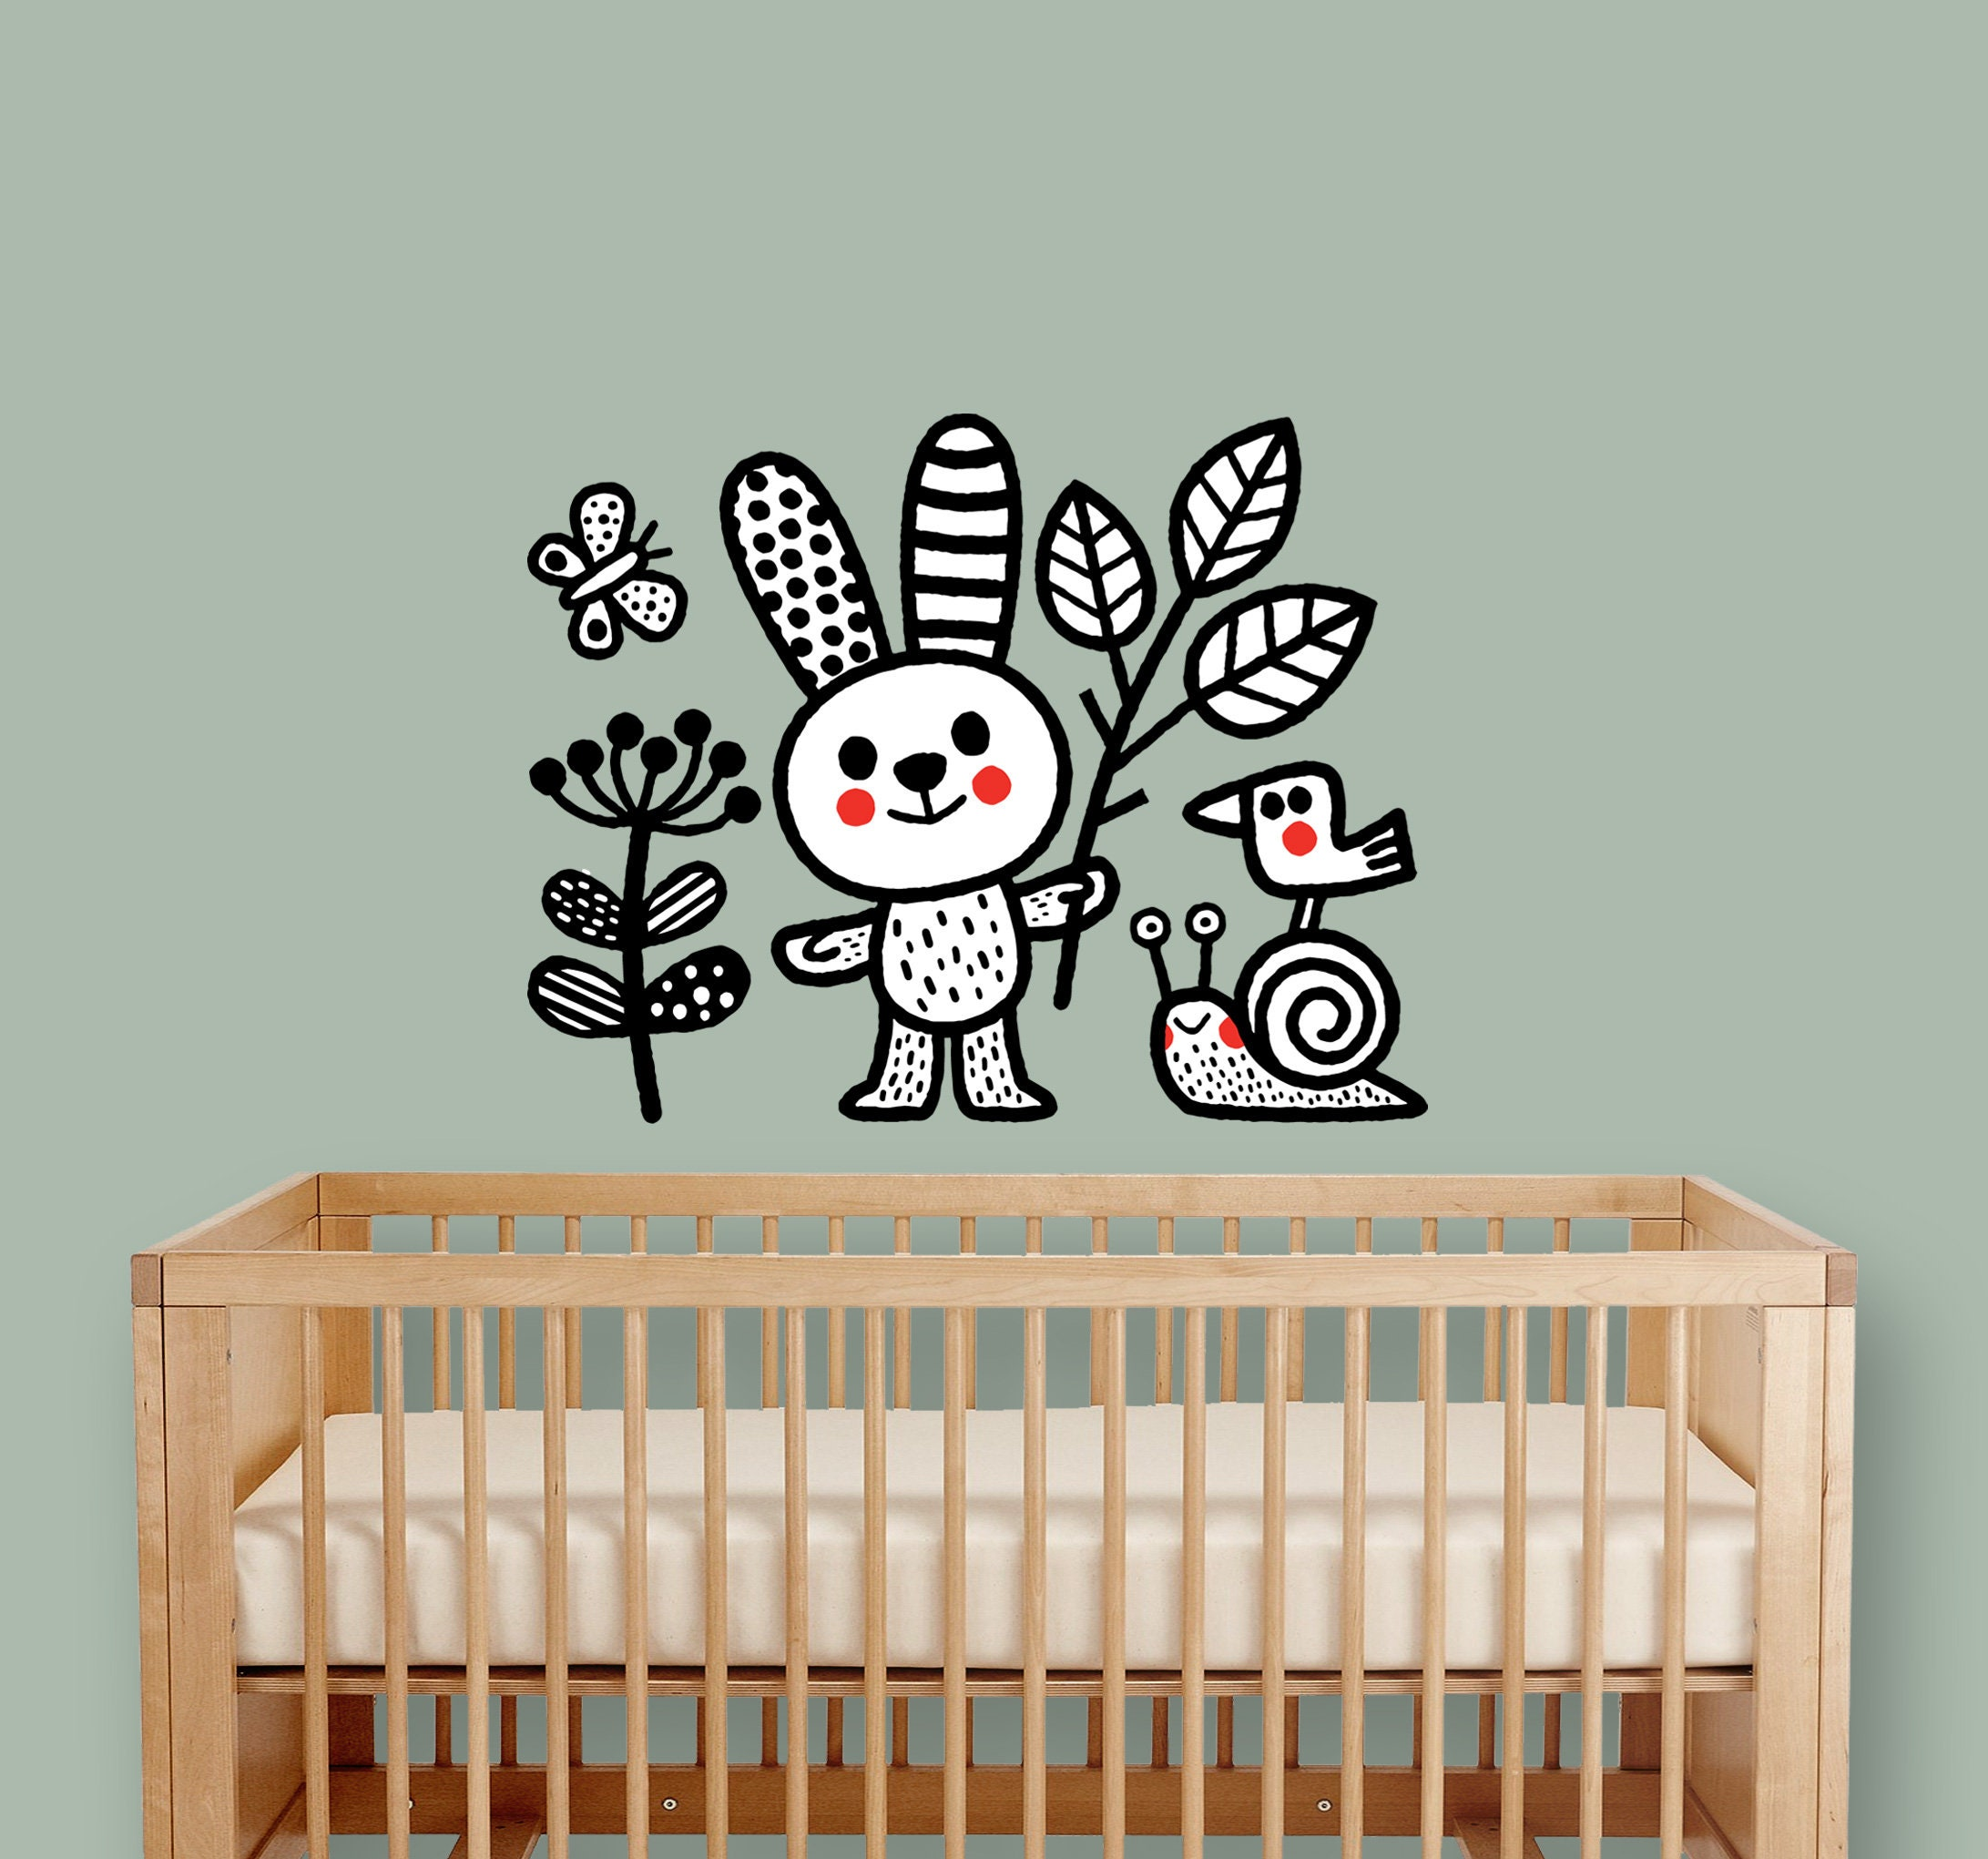 Bunny And His Friends   Nursery Wall Sticker   Wall Decal   Home Decor    Wall Art   Home Decoration   Nursery Wall Decor   Nursery Stickers